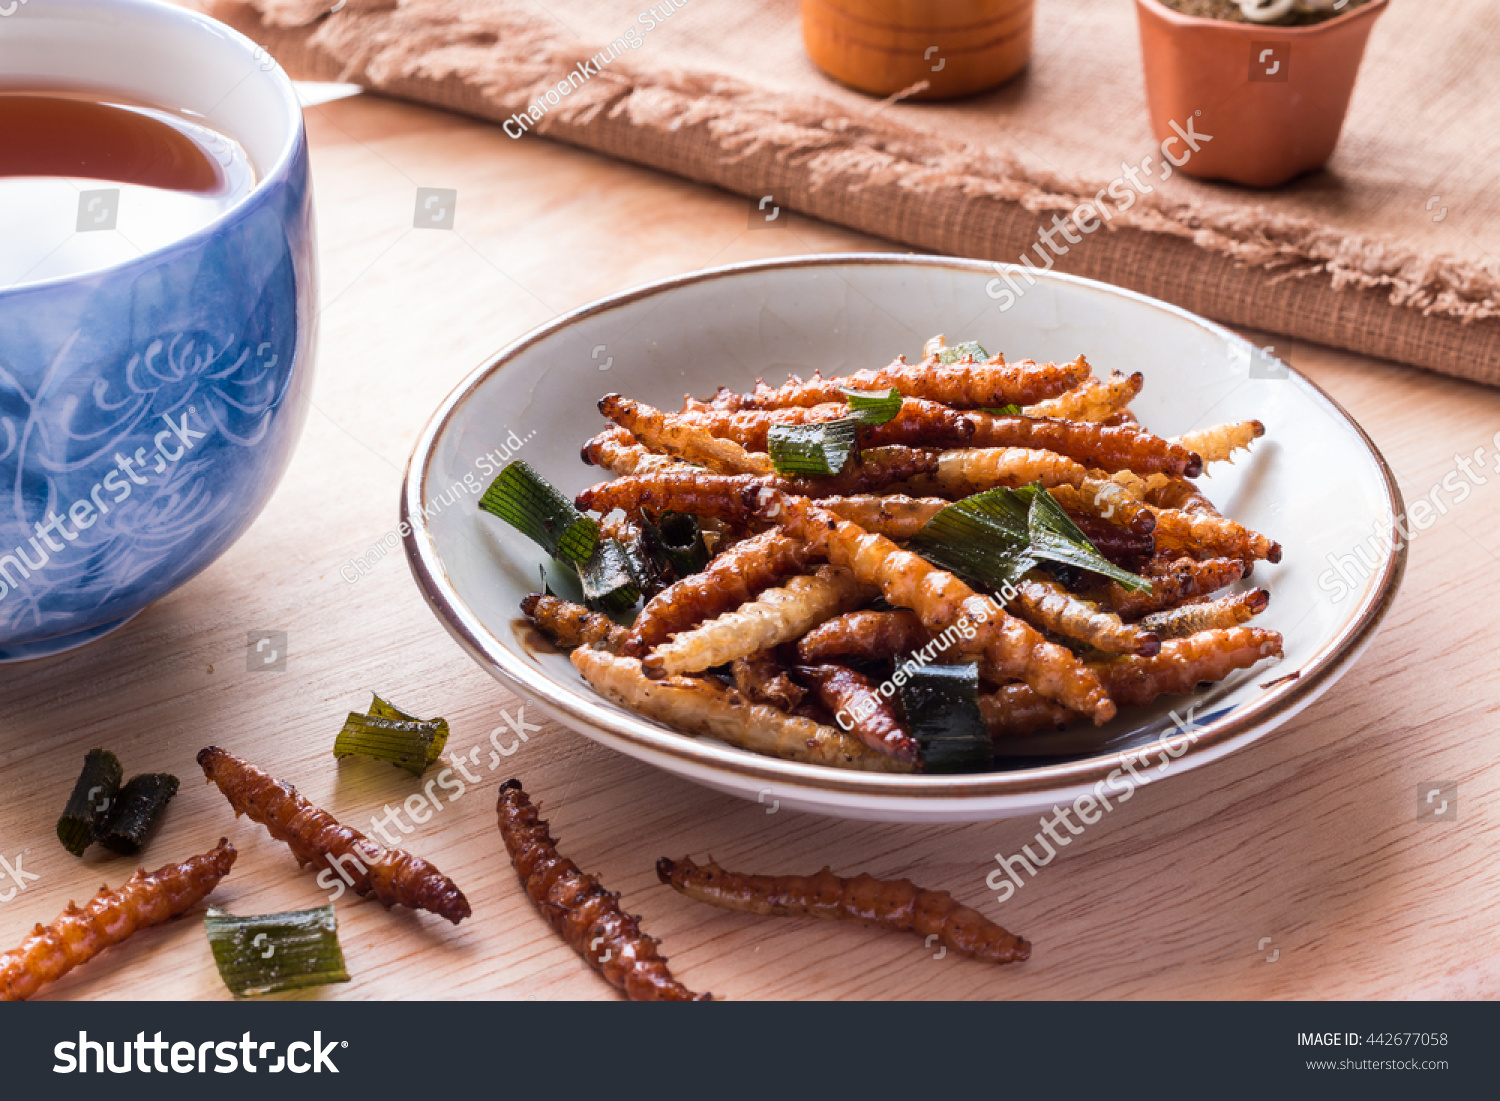 Bamboo worm insect crispy